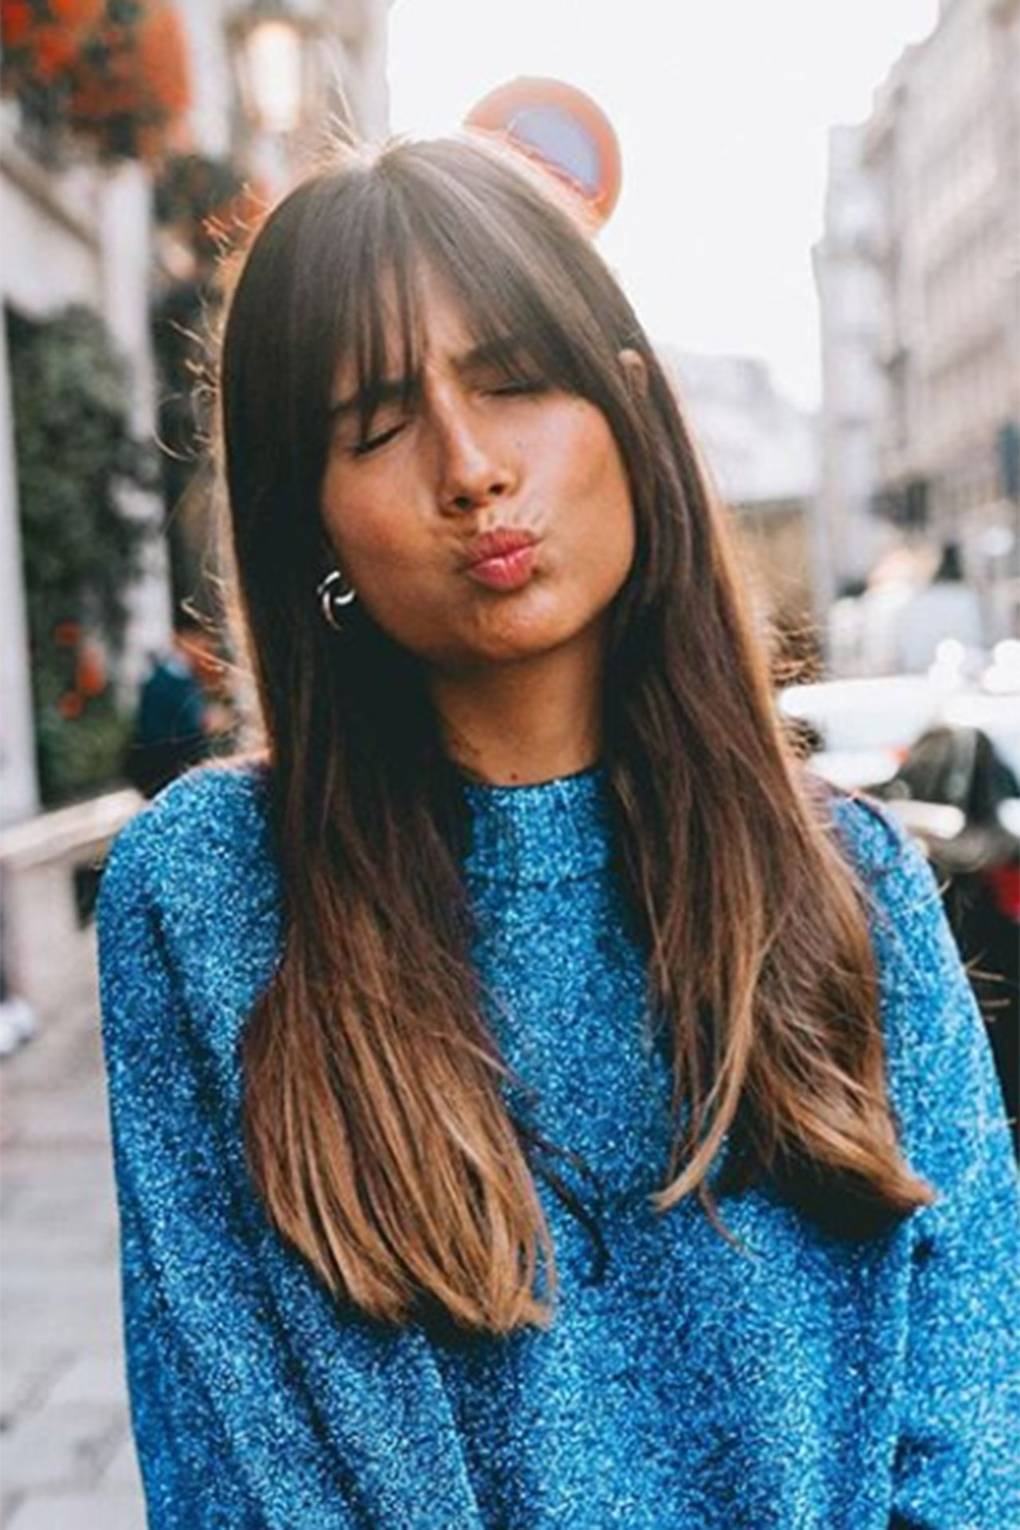 Fringe Hairstyles From Choppy To Side Swept Bangs Glamour Uk